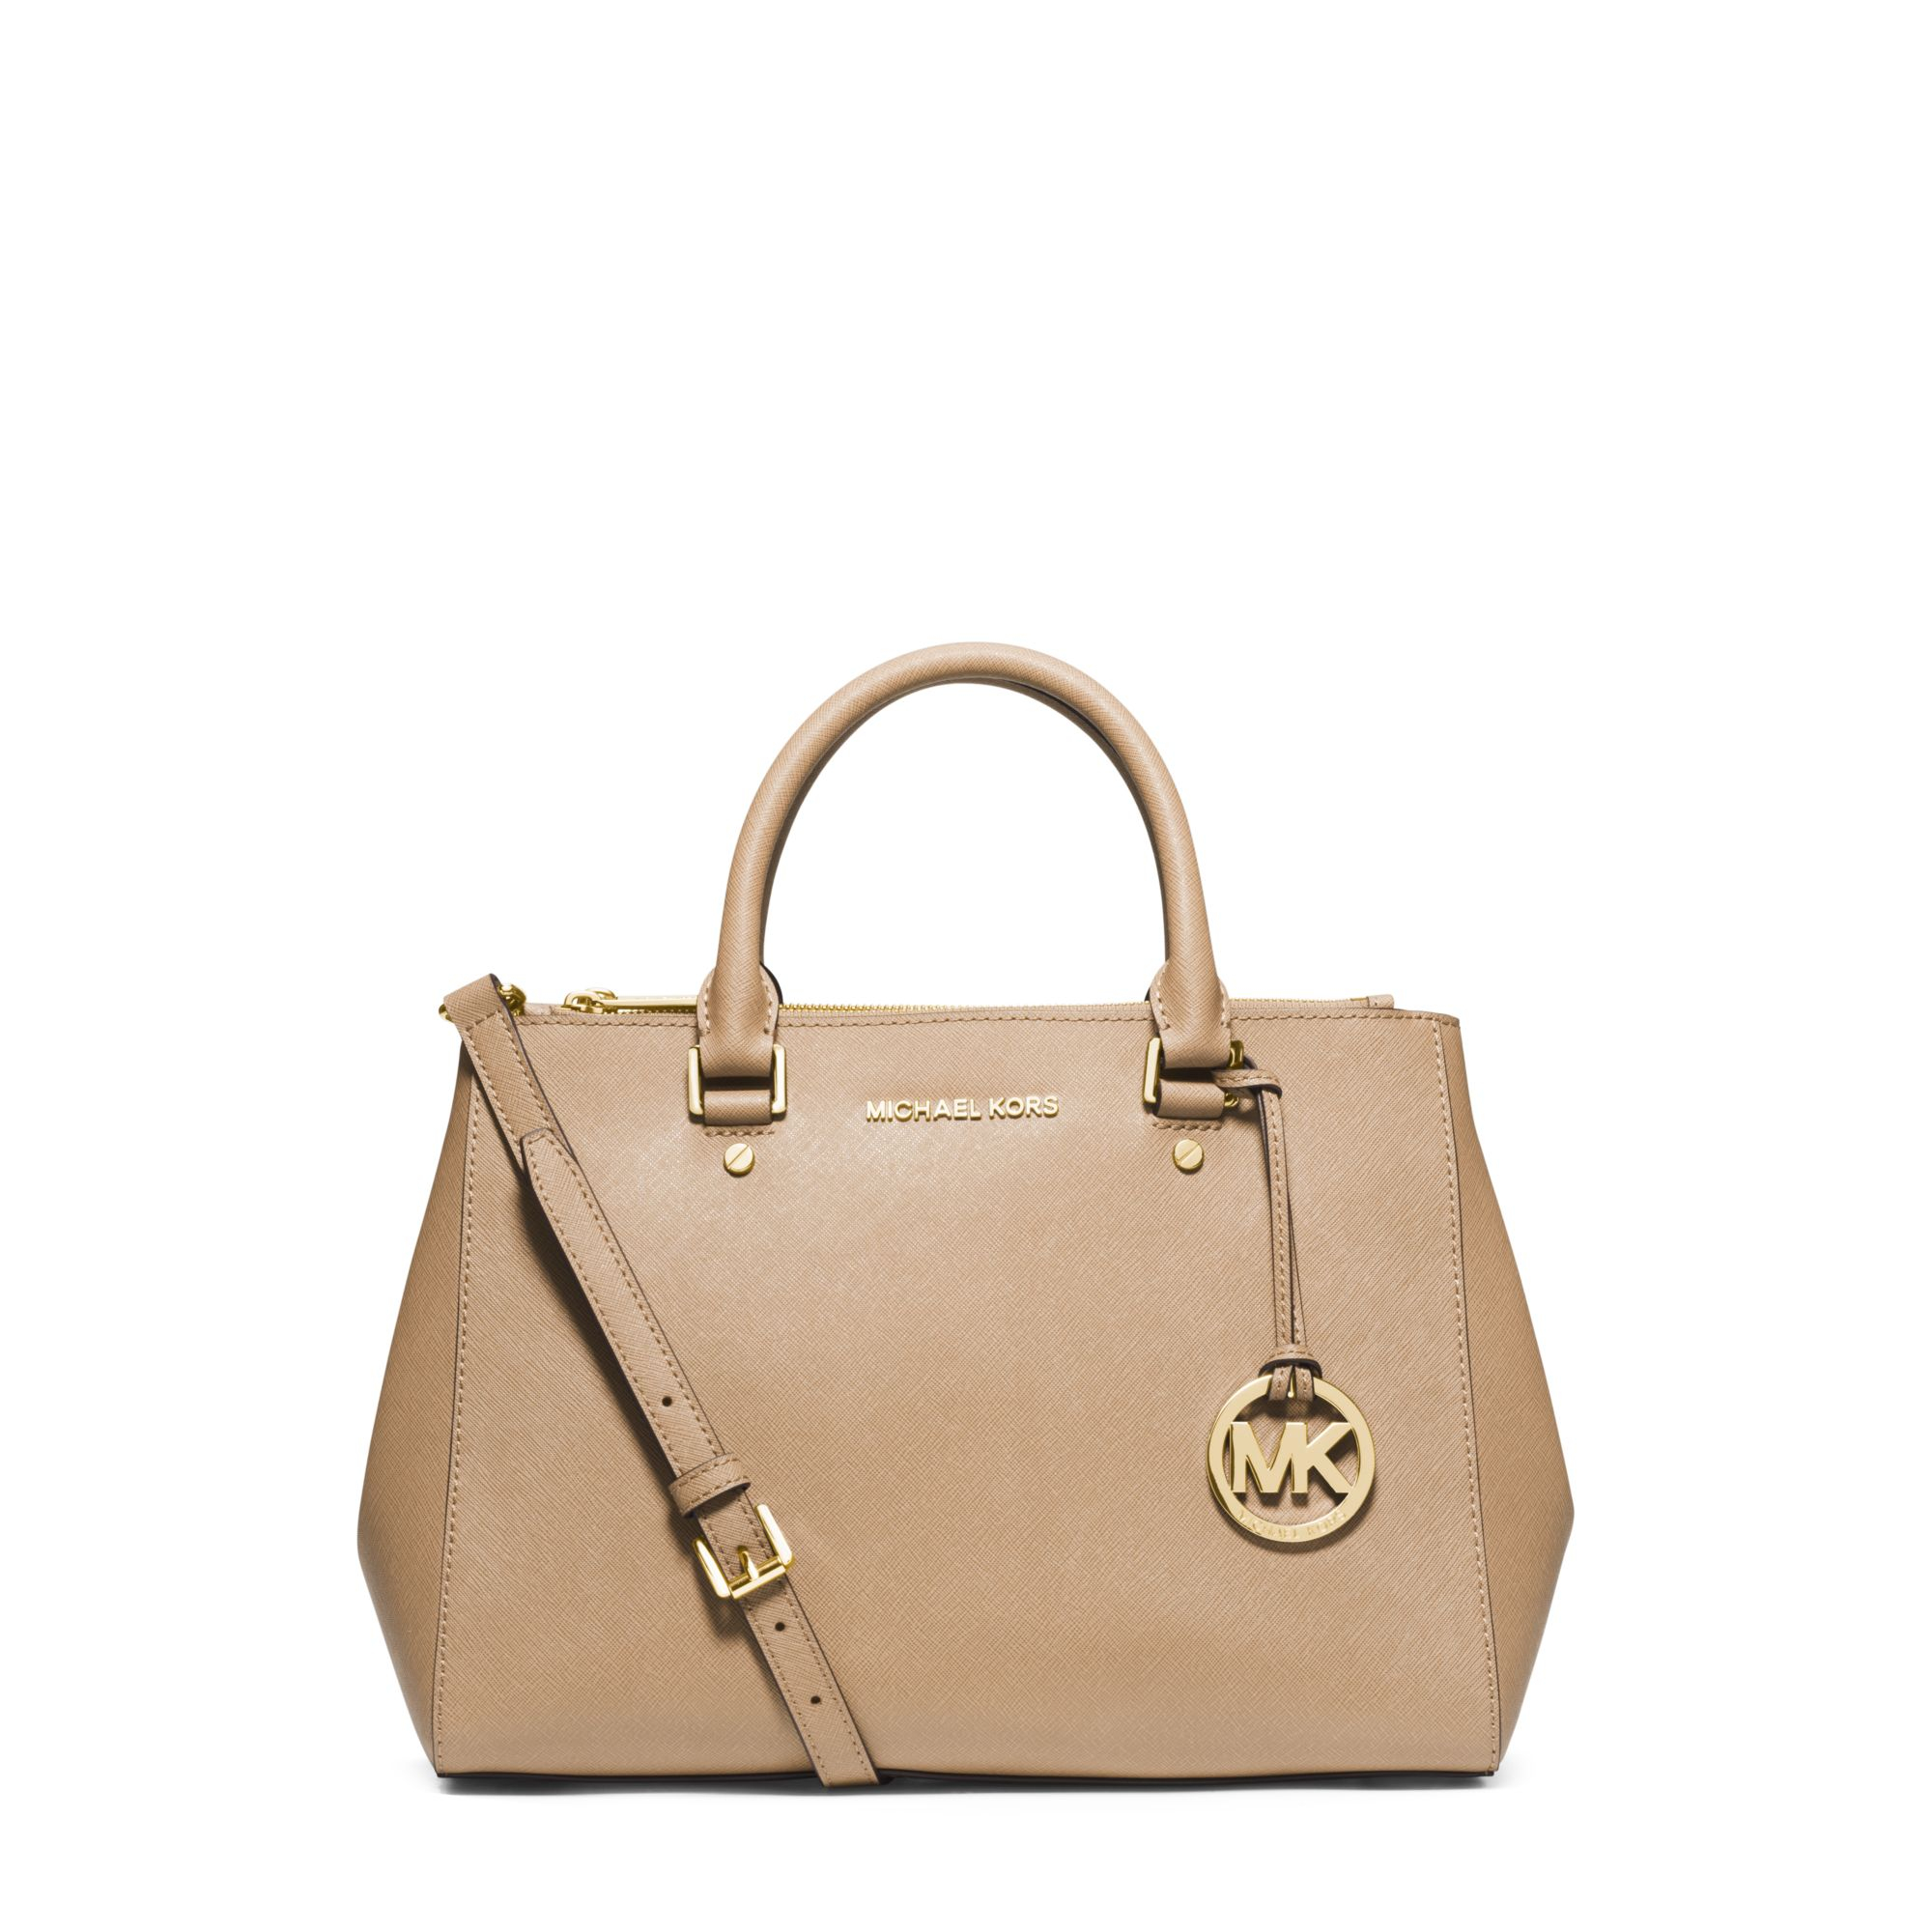 964fca11d0 Lyst - Michael Kors Sutton Medium Saffiano Leather Satchel in Natural